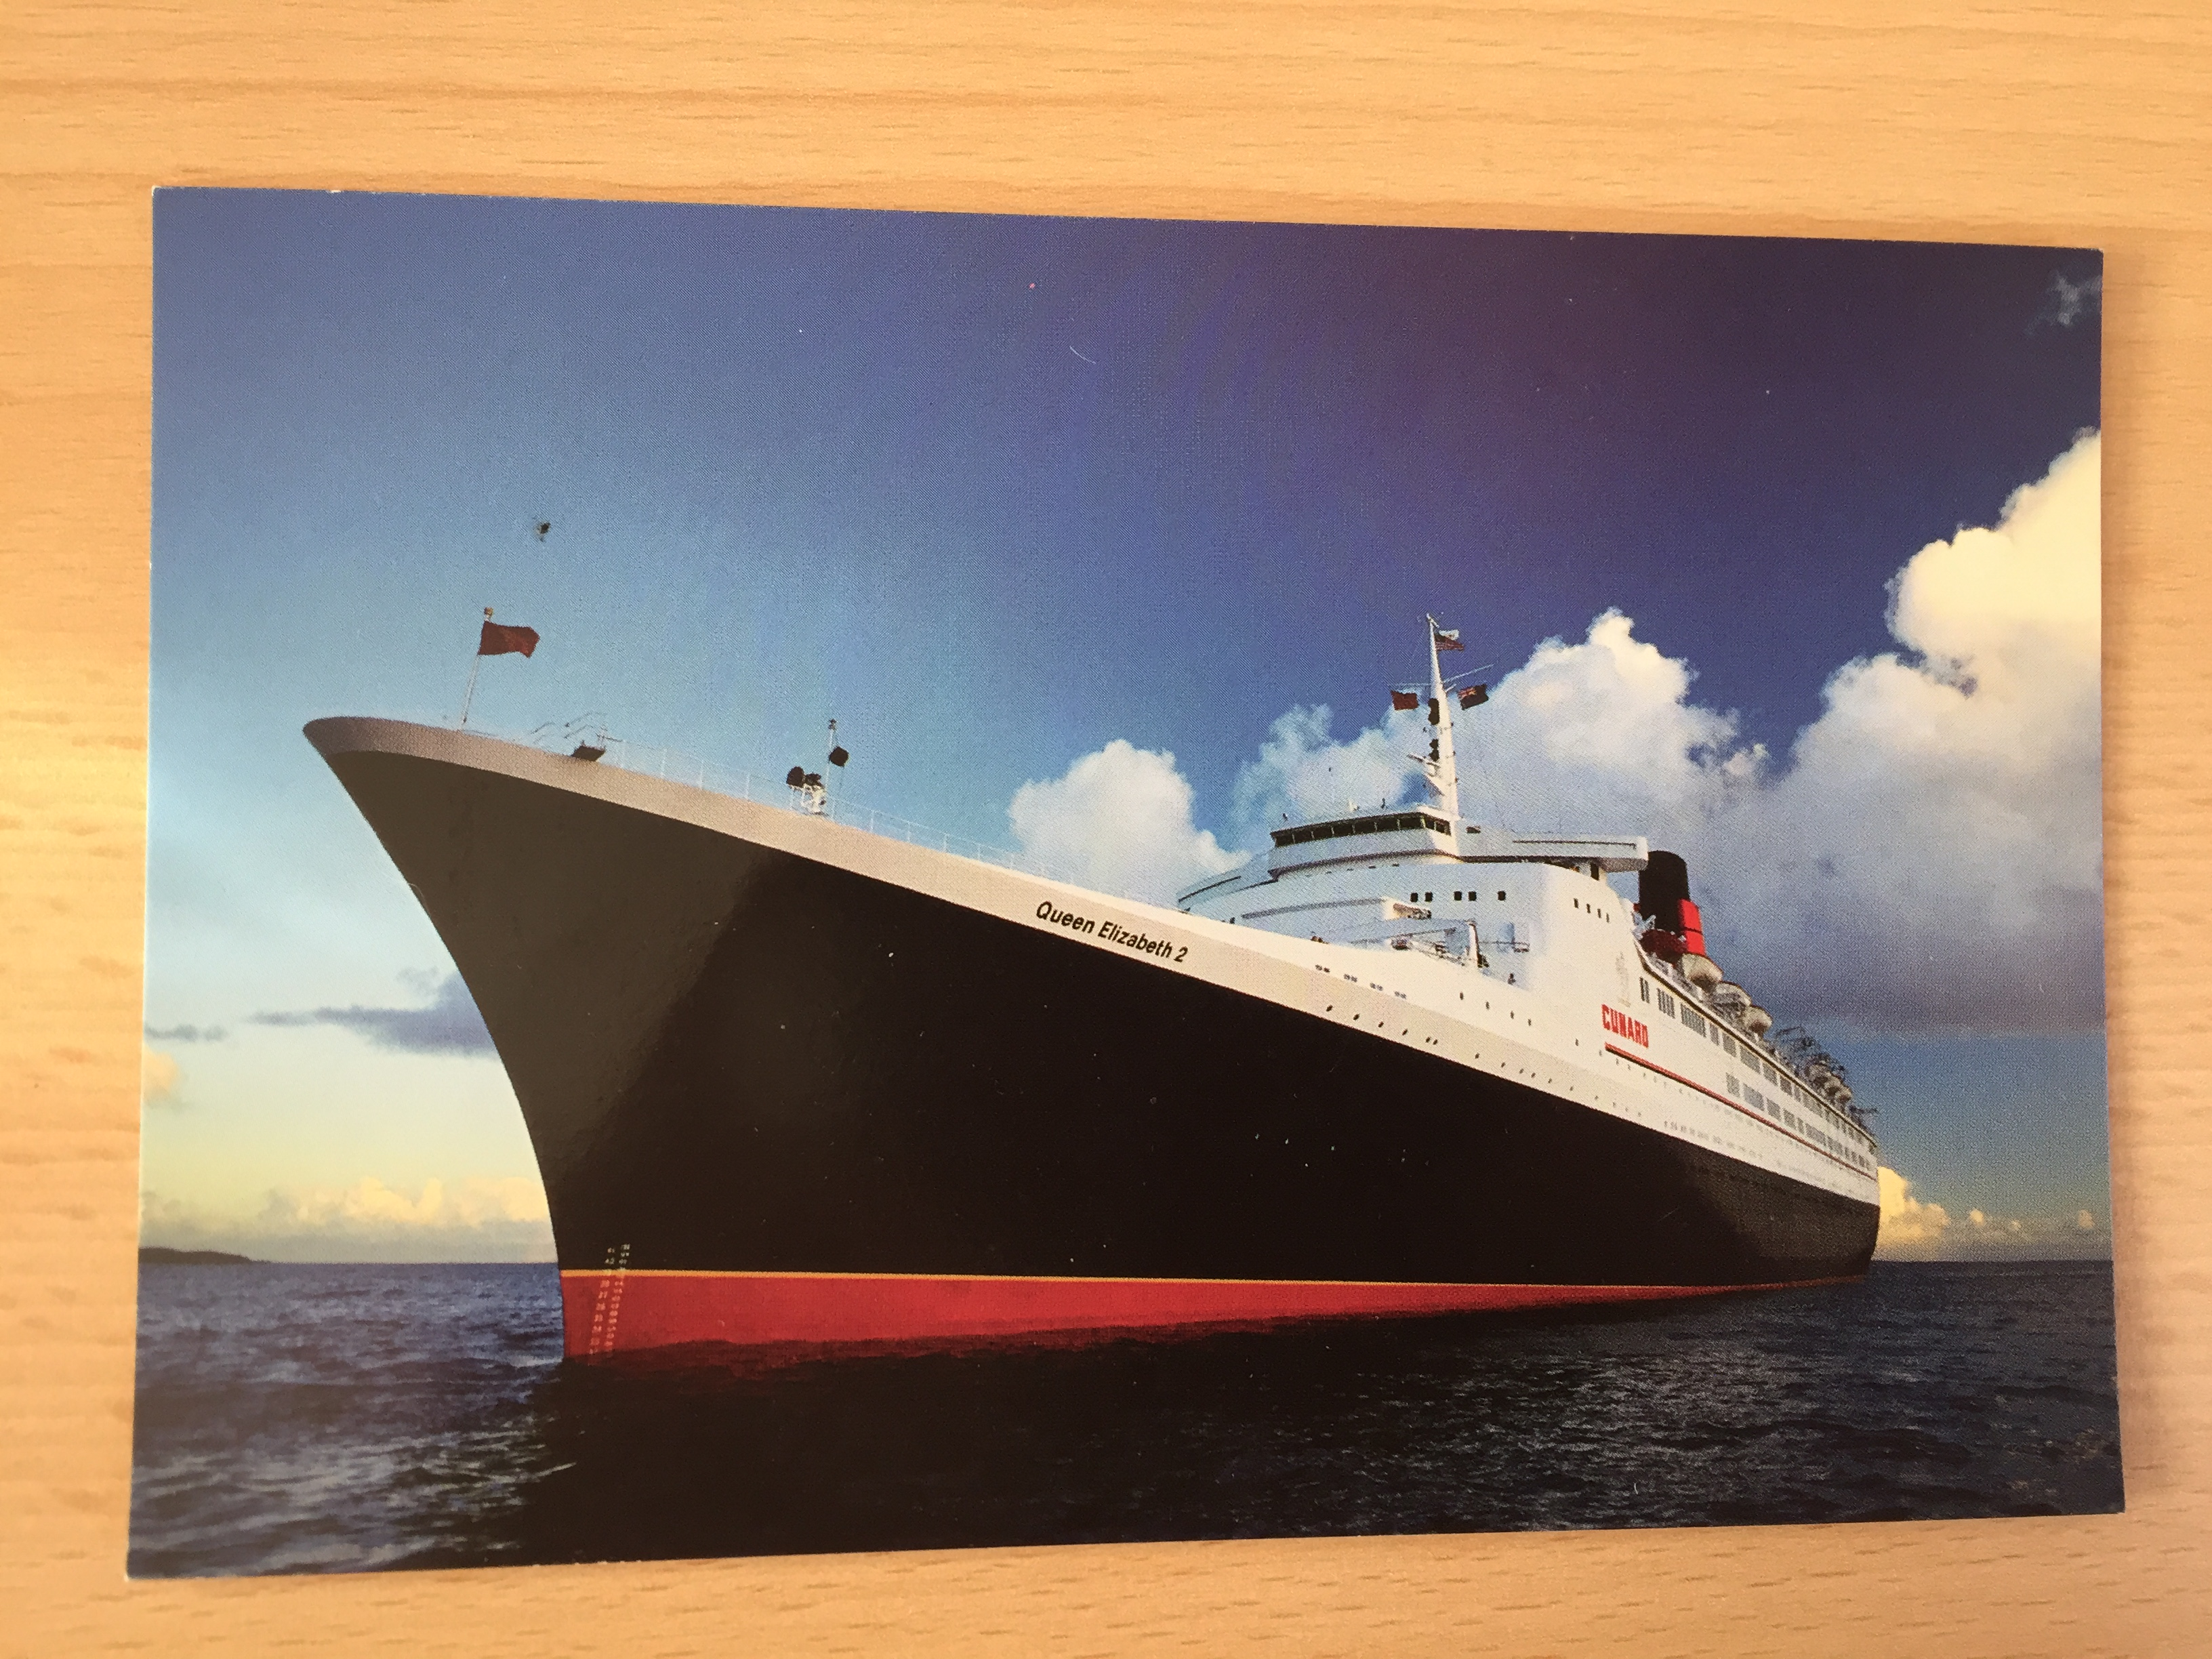 UNUSED COLOUR POSTCARD FROM THE CUNARD LINE VESSEL THE QE2